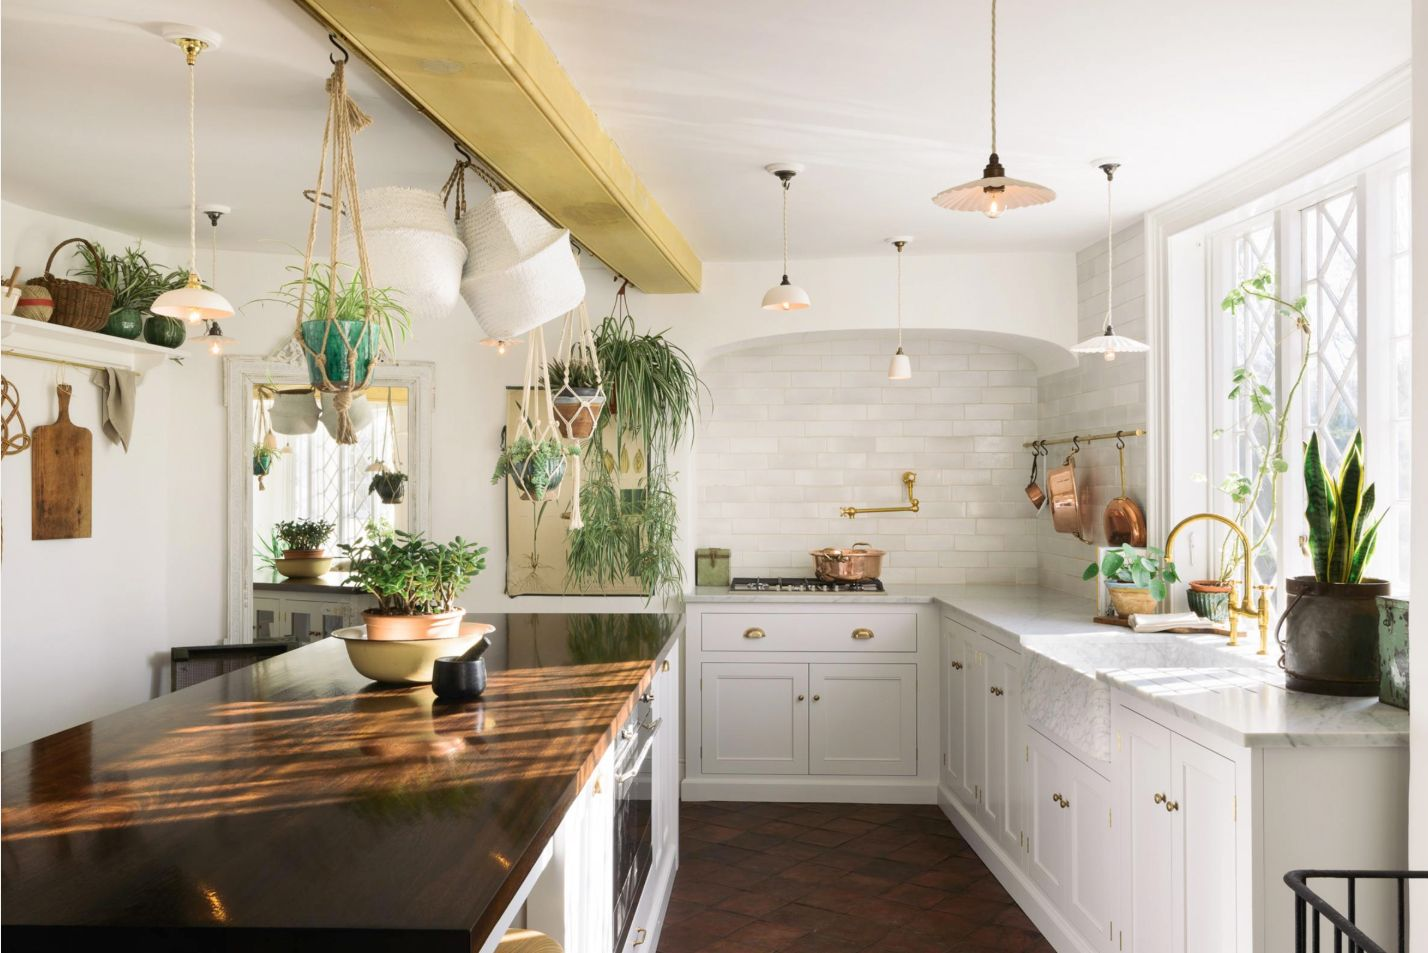 20 White Kitchen Design Ideas Decorating White Kitchens